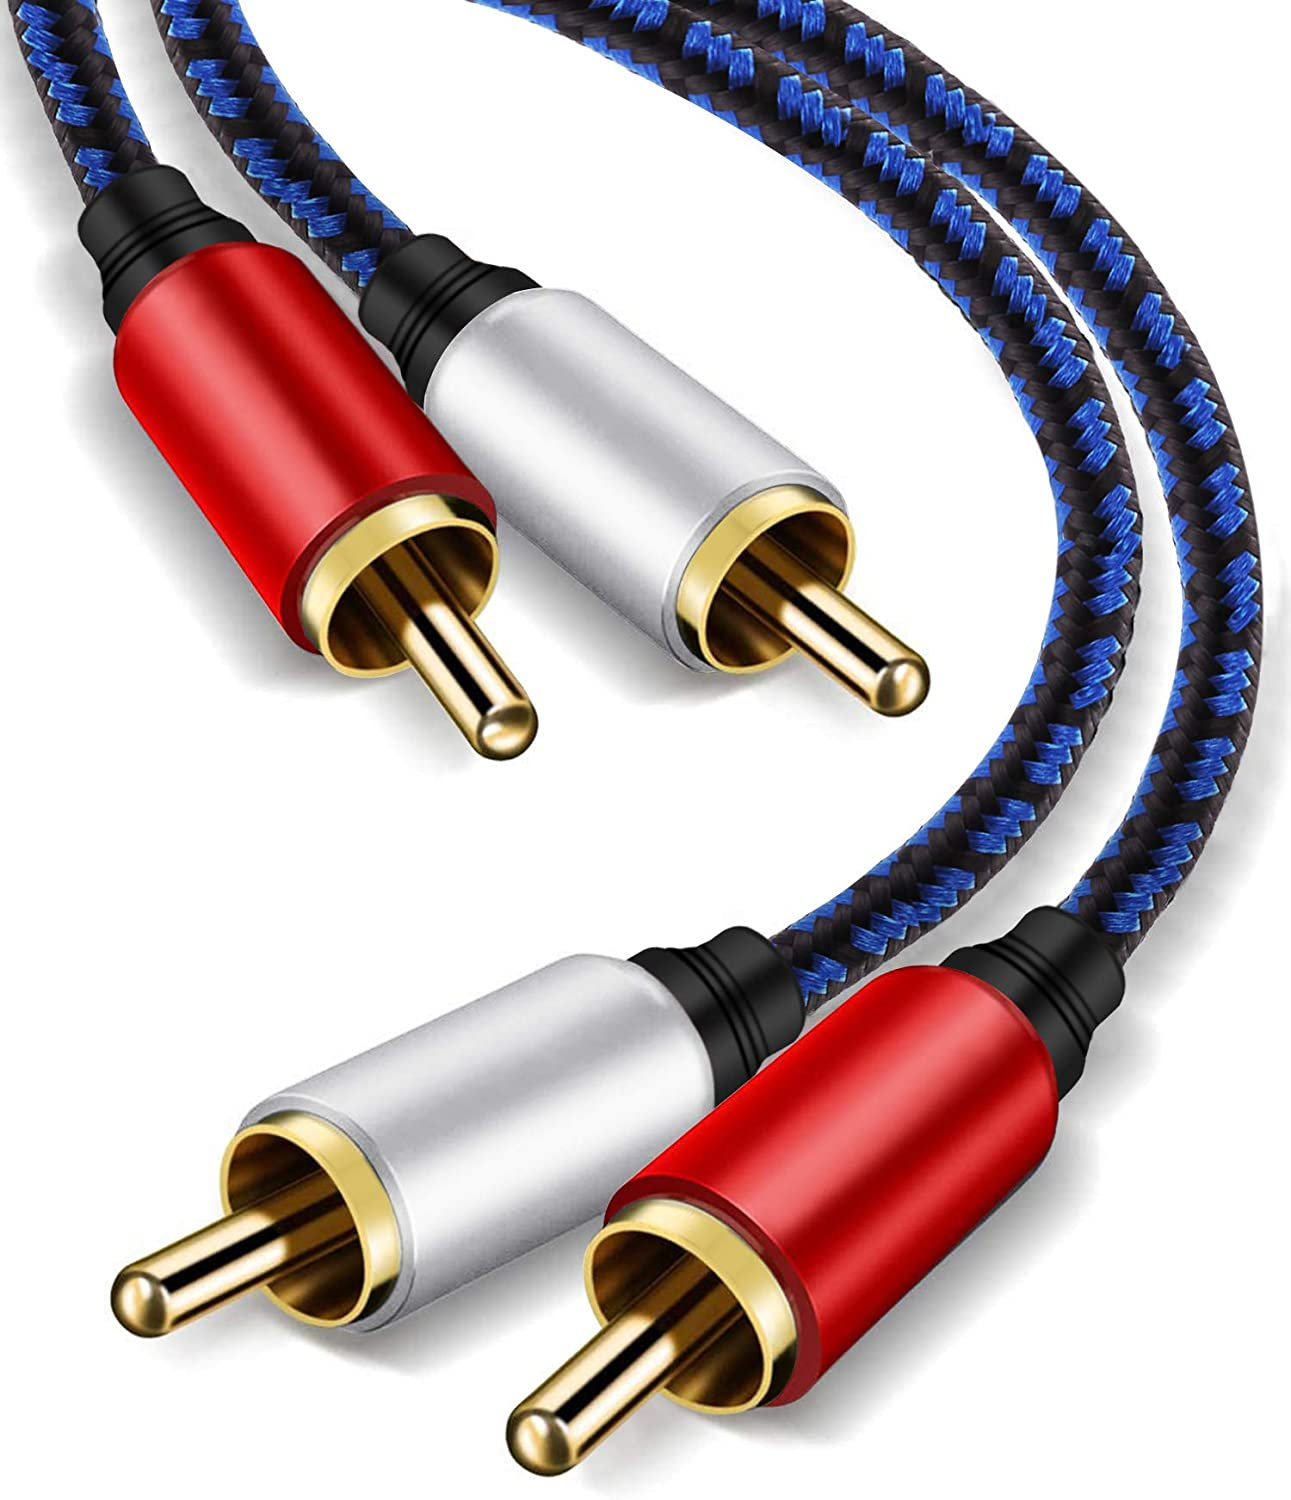 RCA Stereo Cable 15ft,NC XQIN 2RCA Male to 2RCA Male Stereo Audio Cable Gold Plated.for Home Theater, HDTV, Amplifiers, Hi-Fi Systems